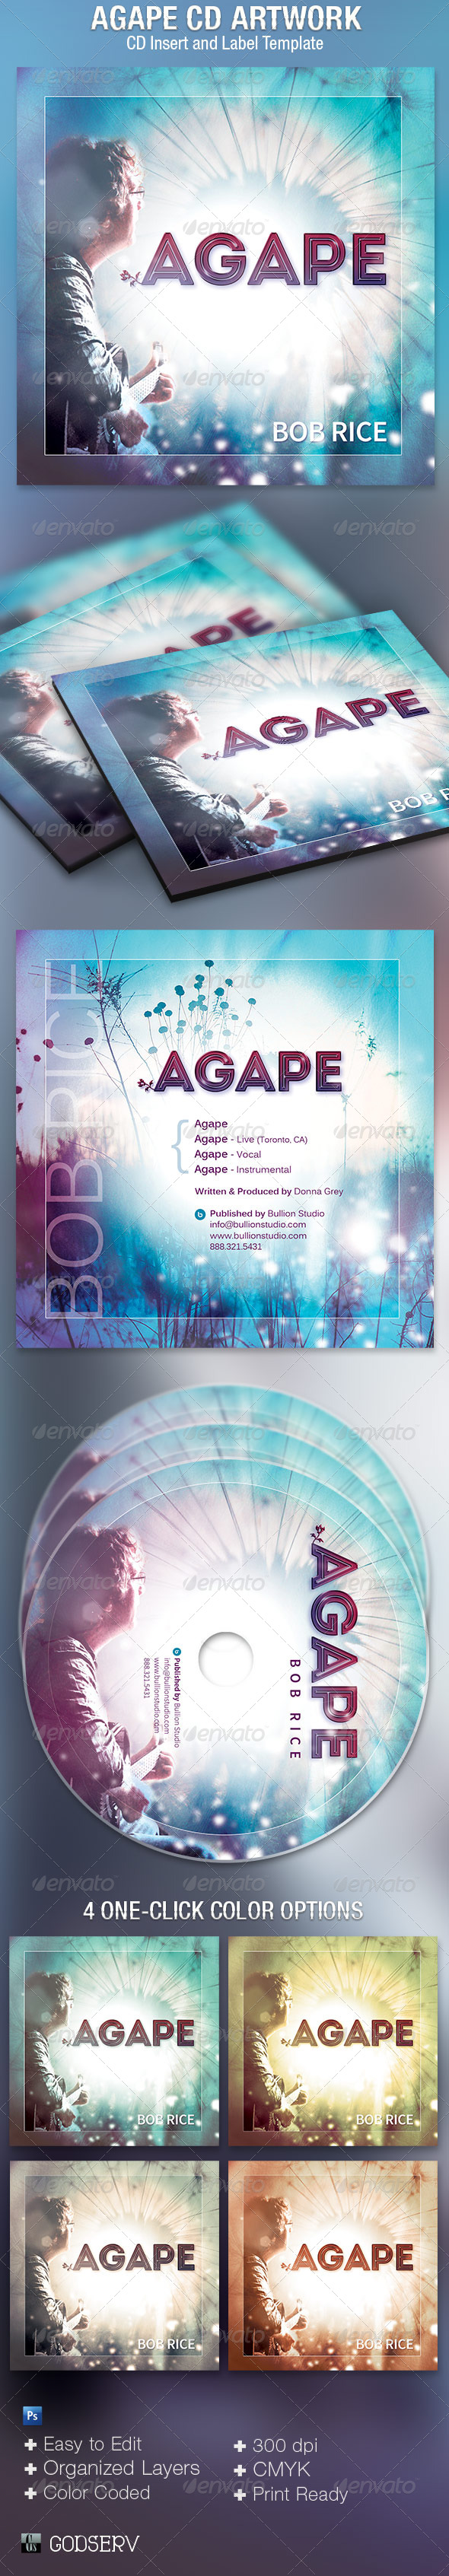 Agape CD Artwork Template - CD & DVD artwork Print Templates